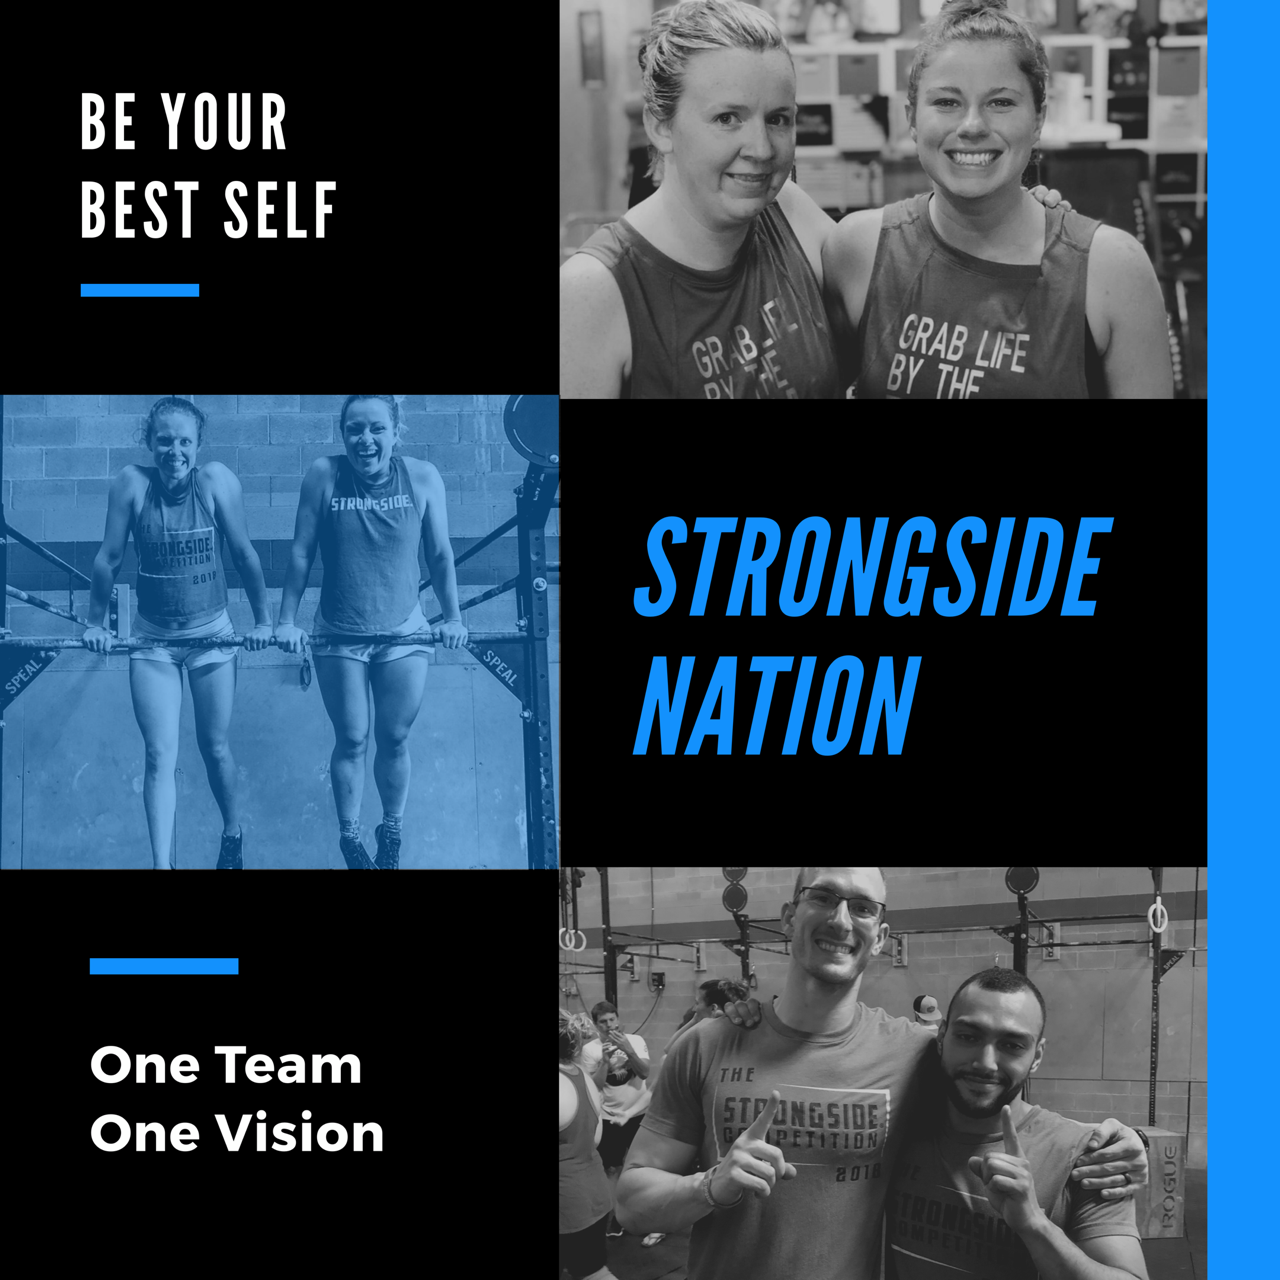 Strongside Barbell: May 27th to June 1st 2019